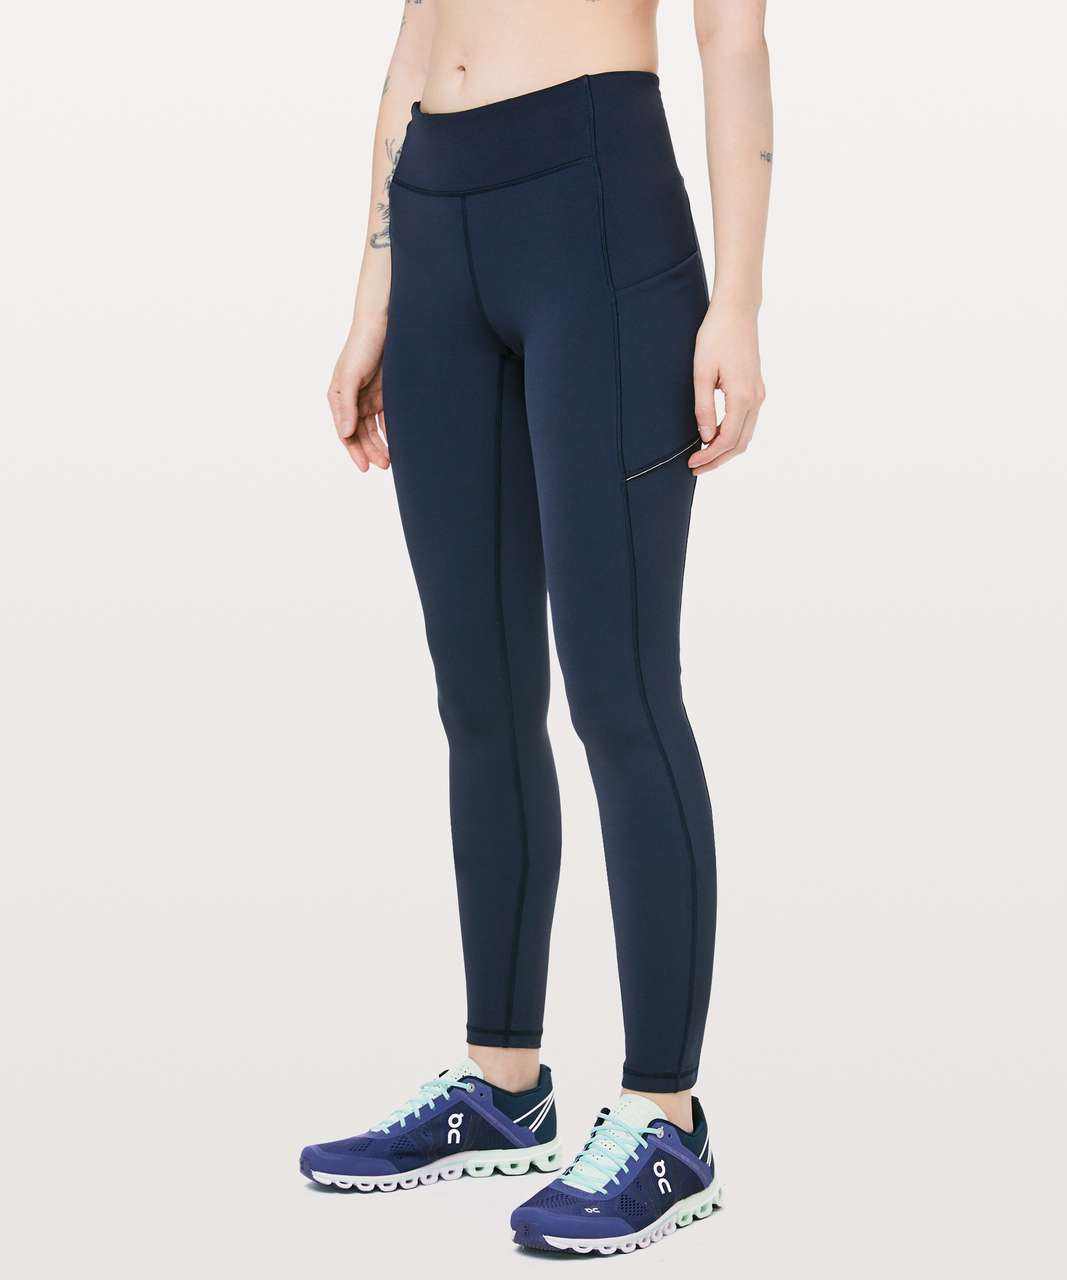 "Lululemon Speed Up Tight Tall 31"" - True Navy"